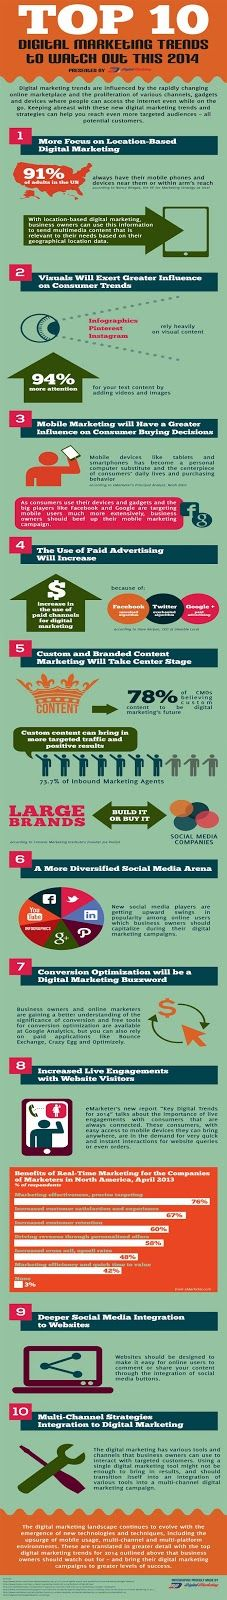 Digital Marketing Trends To Watch Out This 2014 - http://www.infographics4marketing.net/2014/01/Top-10-Digital-Marketing-Trends-to-Watch-Out-This-2014.html - #marketing #infographics #infographic